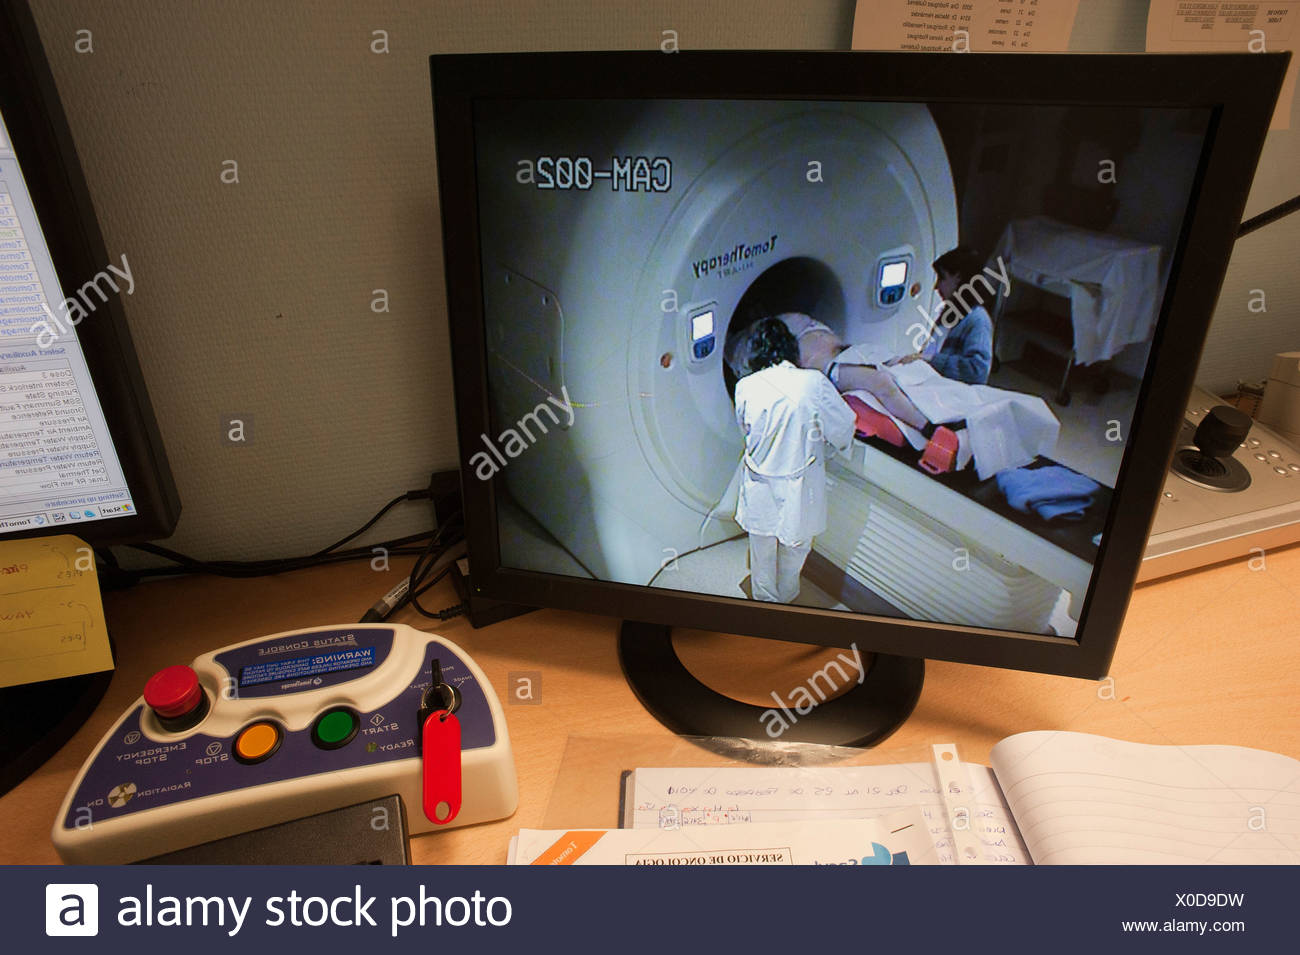 A patient enters a linear accelerator or linac for cancer therapy. - Stock Image